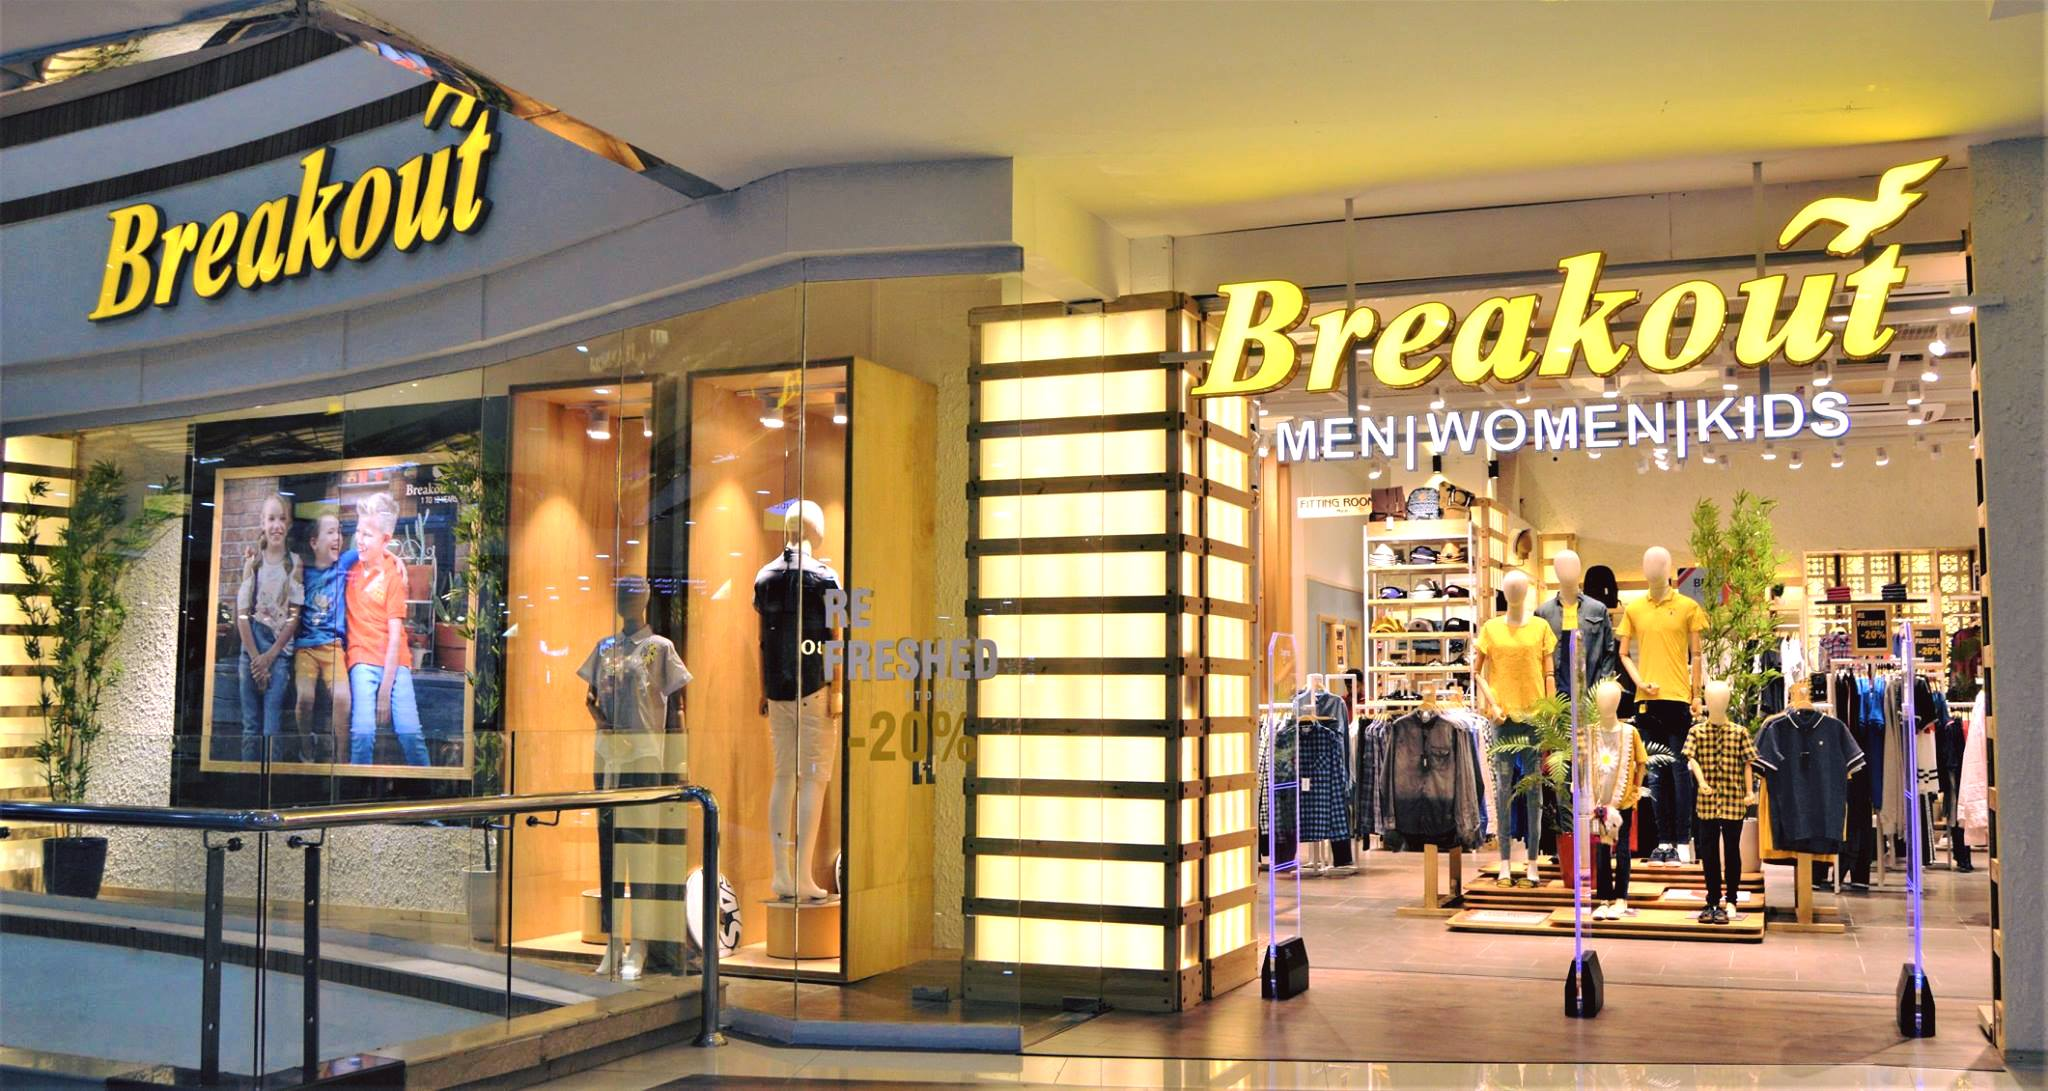 Breakout - Men, Women, Girls, Boys & Kids Clothing Online Store